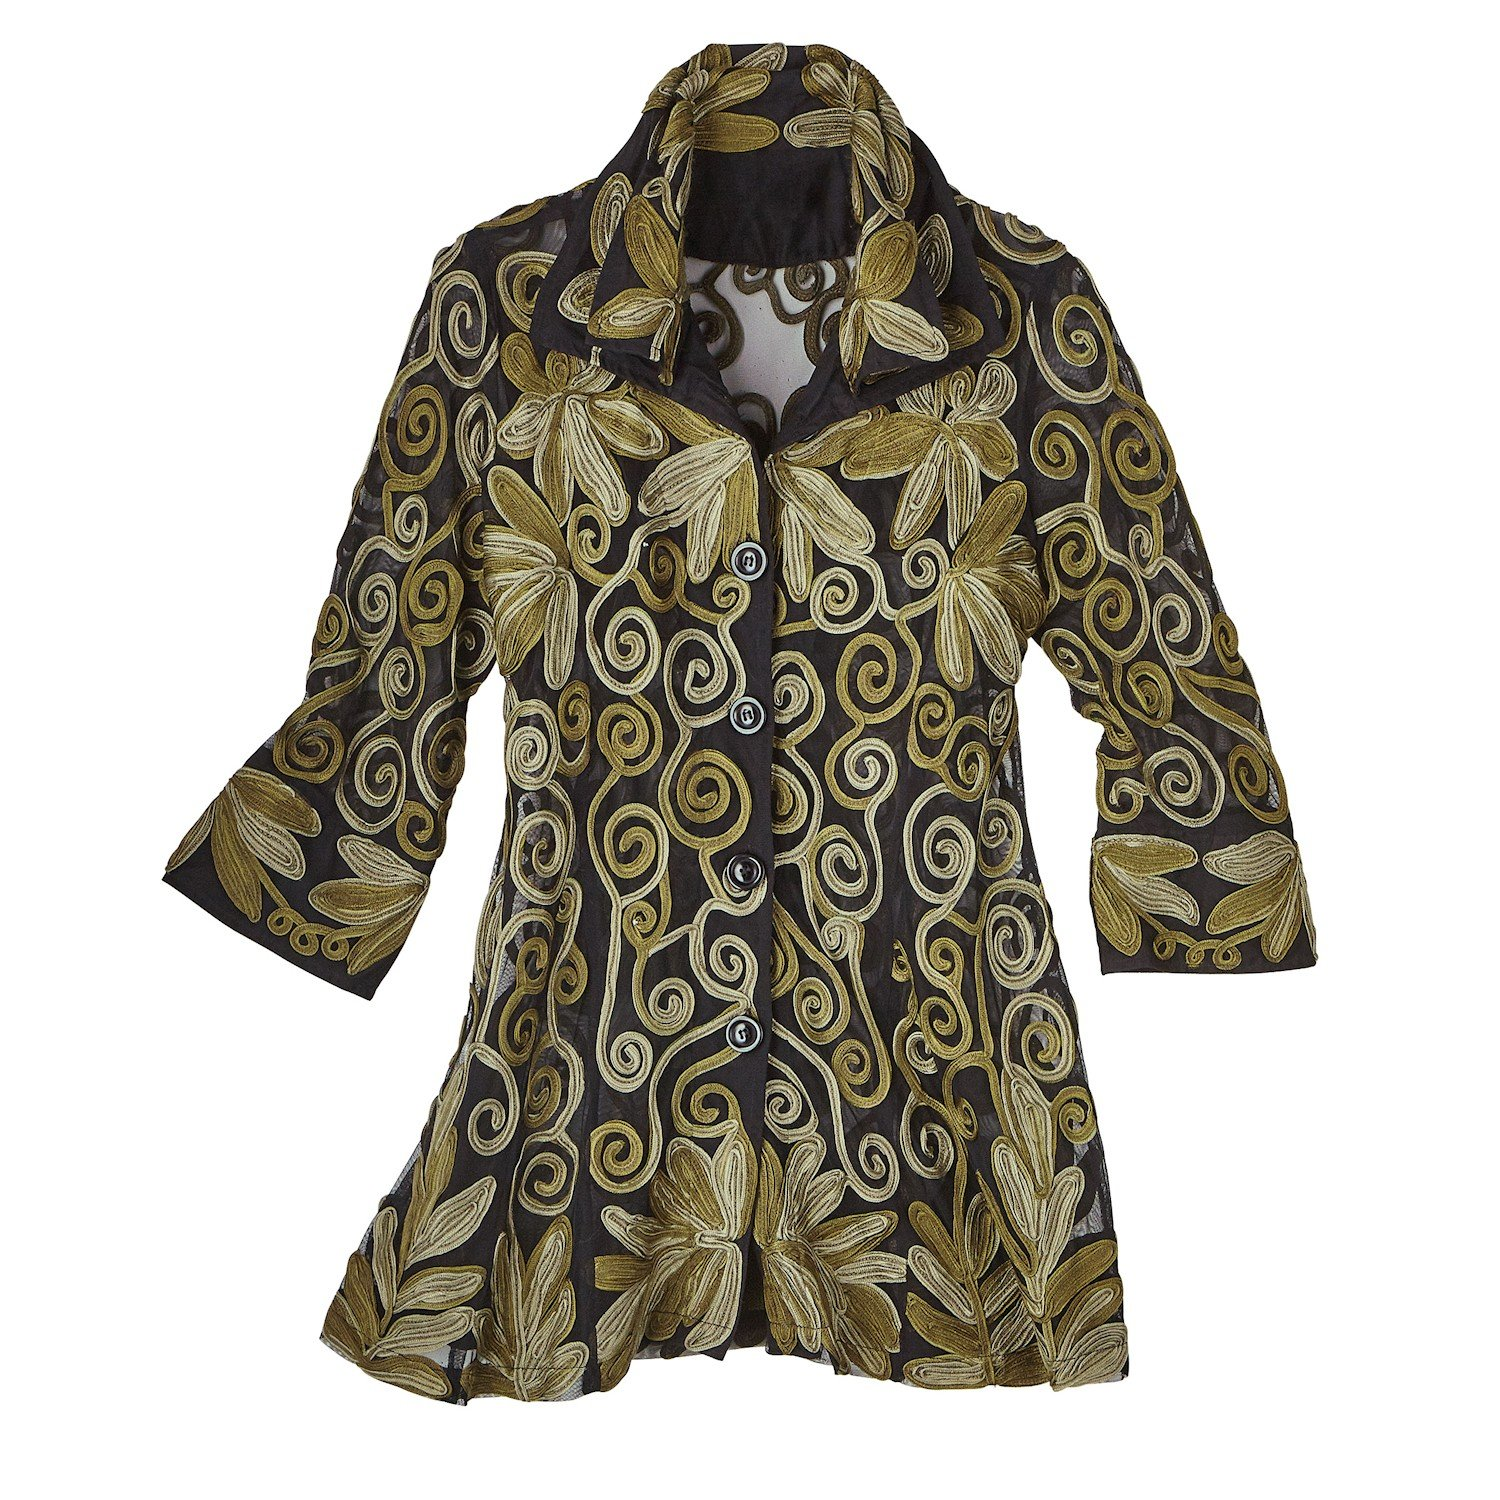 Parsley & Sage Women's Button-Down Tunic Shirt - All-Over Embroidery Metallic Crewelwork-2X